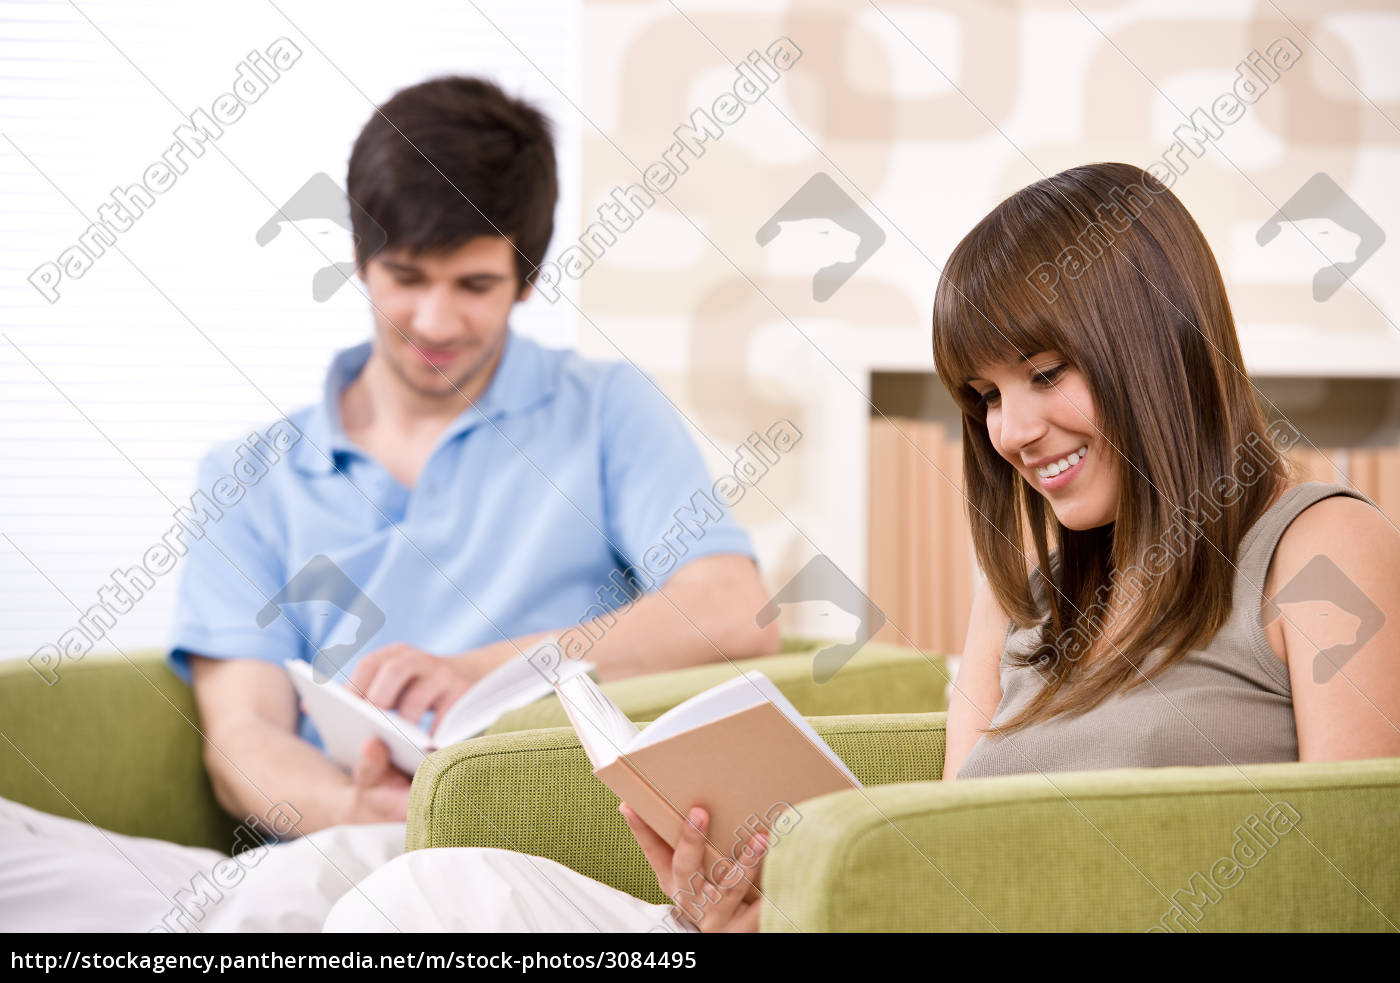 study, teenager, student, facilitate, ease, resting - 3084495